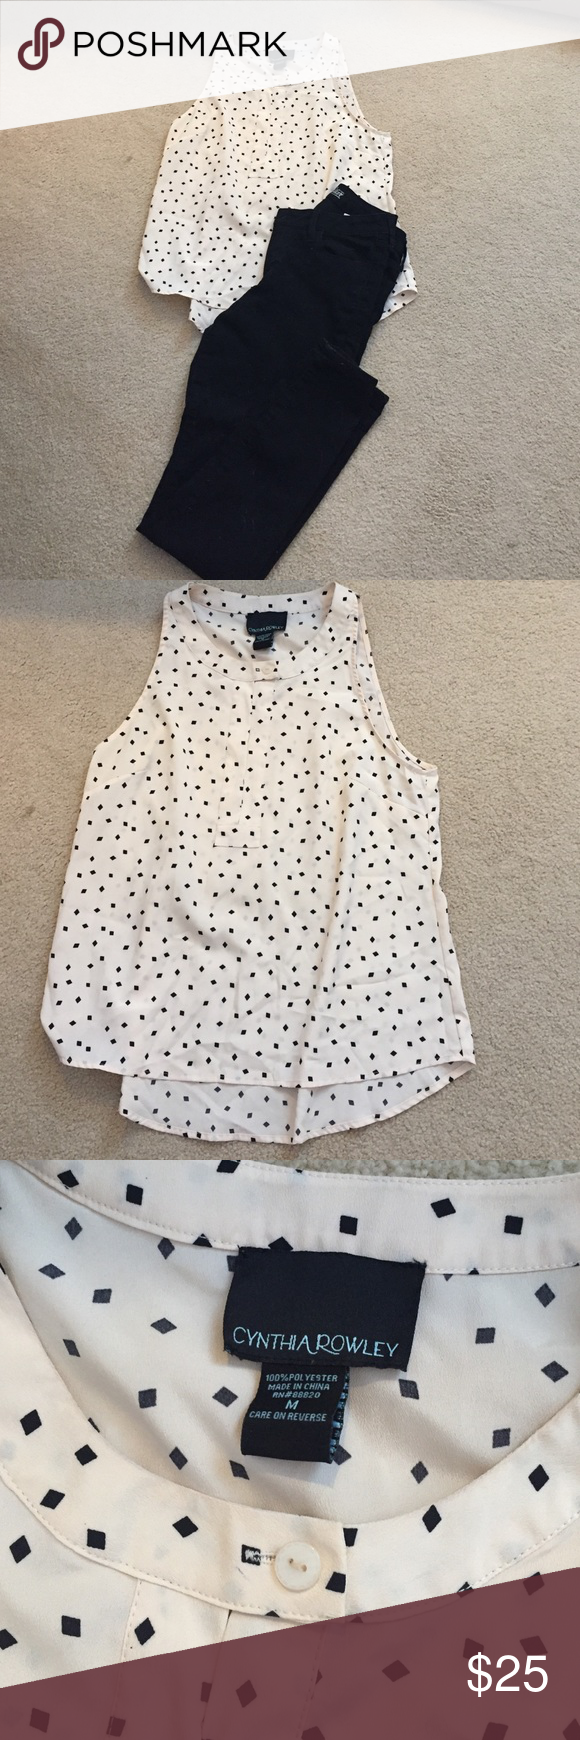 "Cream and Black Polka Dot Top Like new sleeveless top perfect for layering. Slightly longer in the back. Size medium. ""Dots"". are diamonds as opposed to circles. Cynthia Rowley Tops"